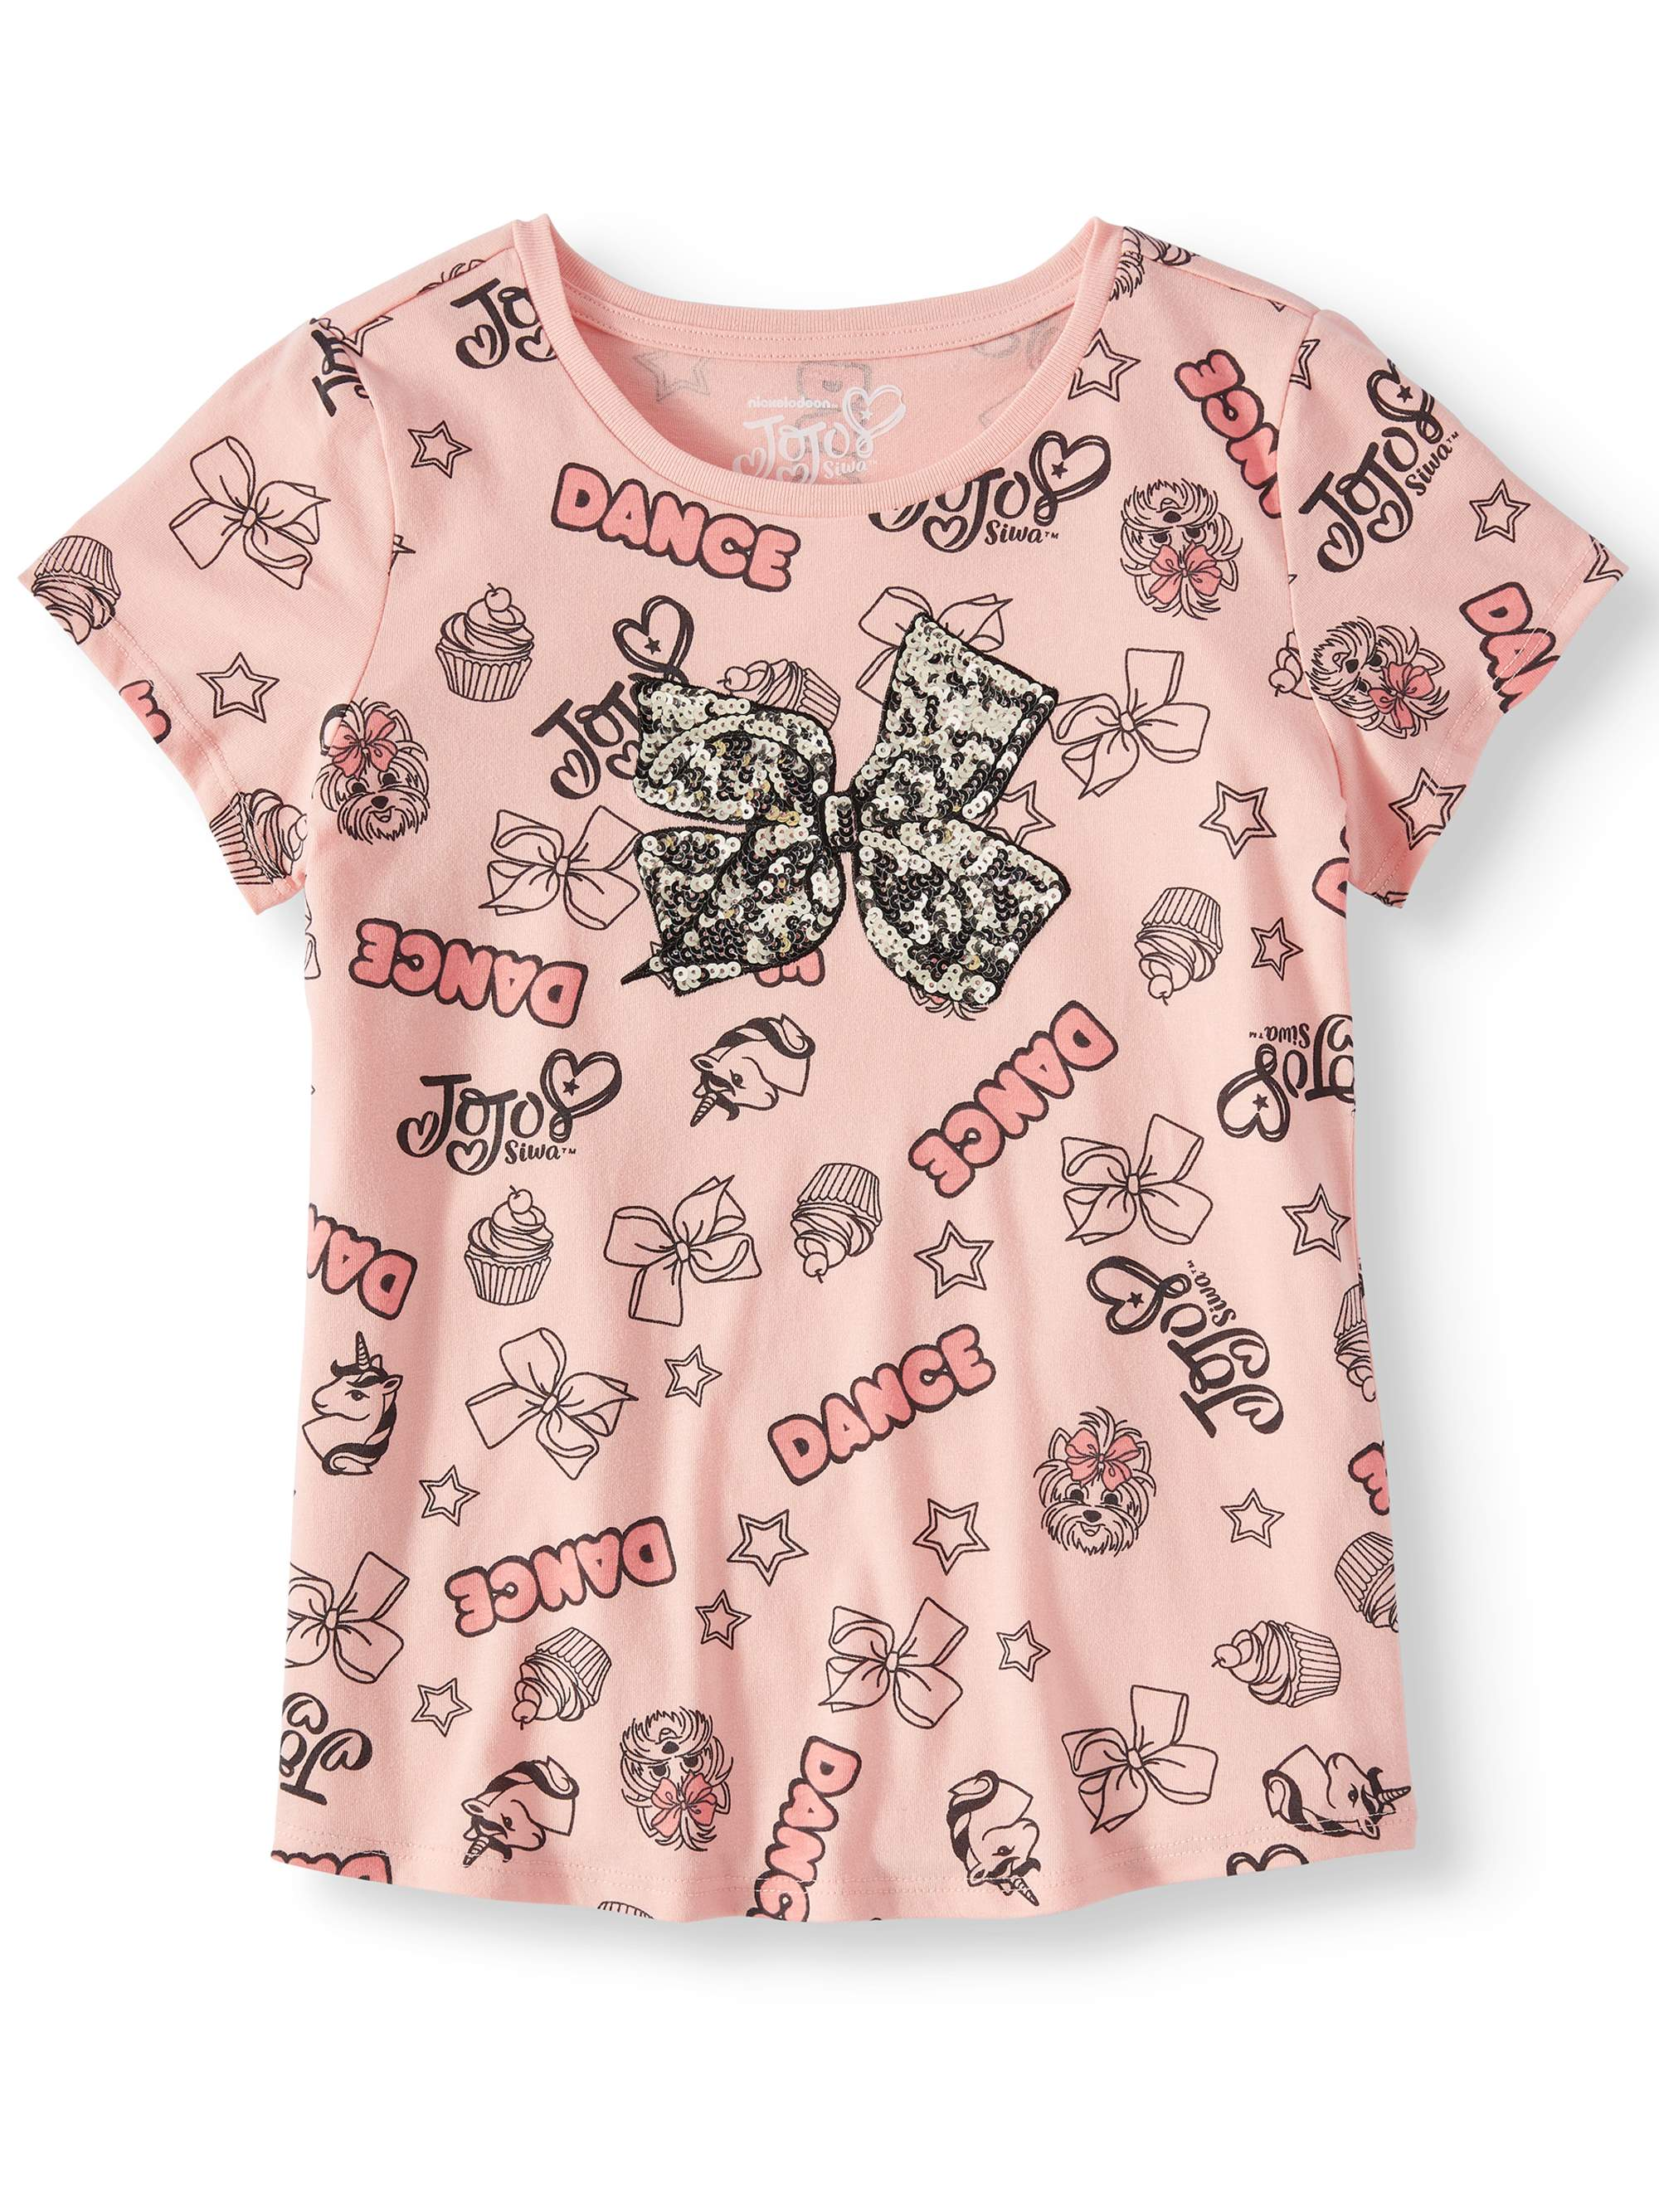 All-Over JoJo Icon Bow Graphic T-Shirt (Little Girls & Big Girls)